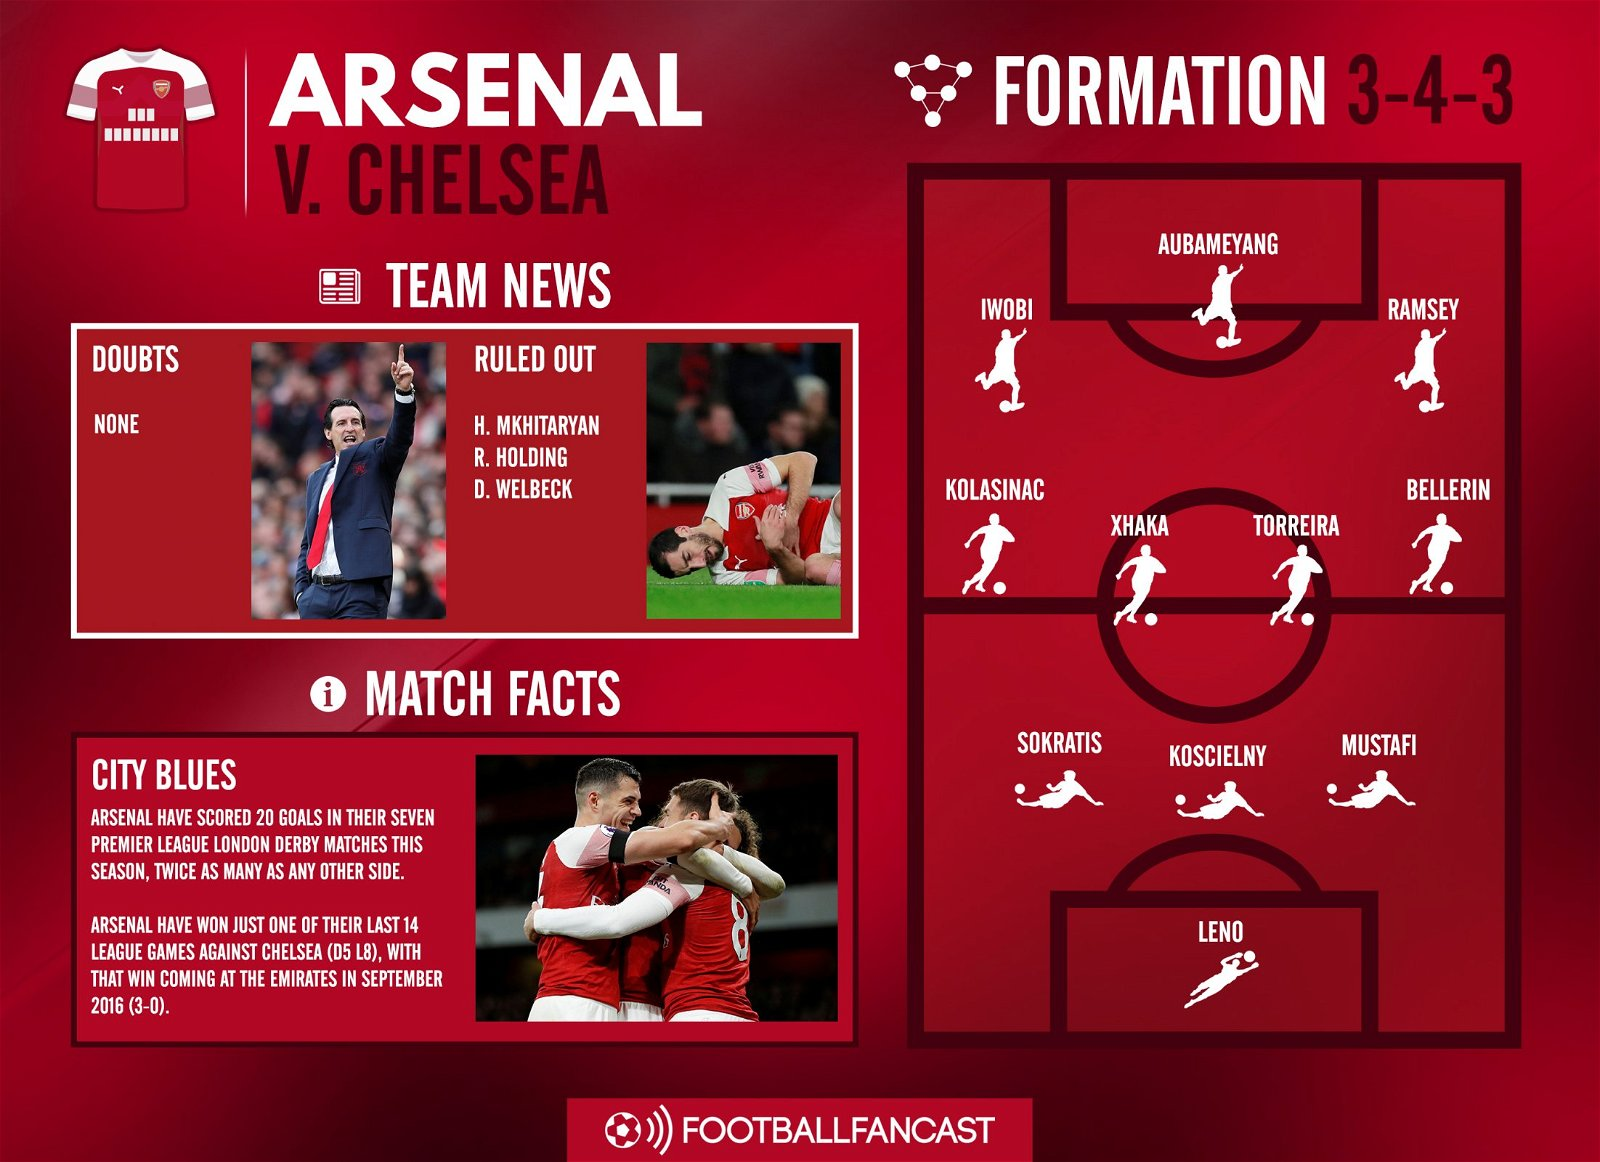 Arsenal vs Chelsea Arsneal Team News graphic - Match Preview: Arsenal vs Chelsea